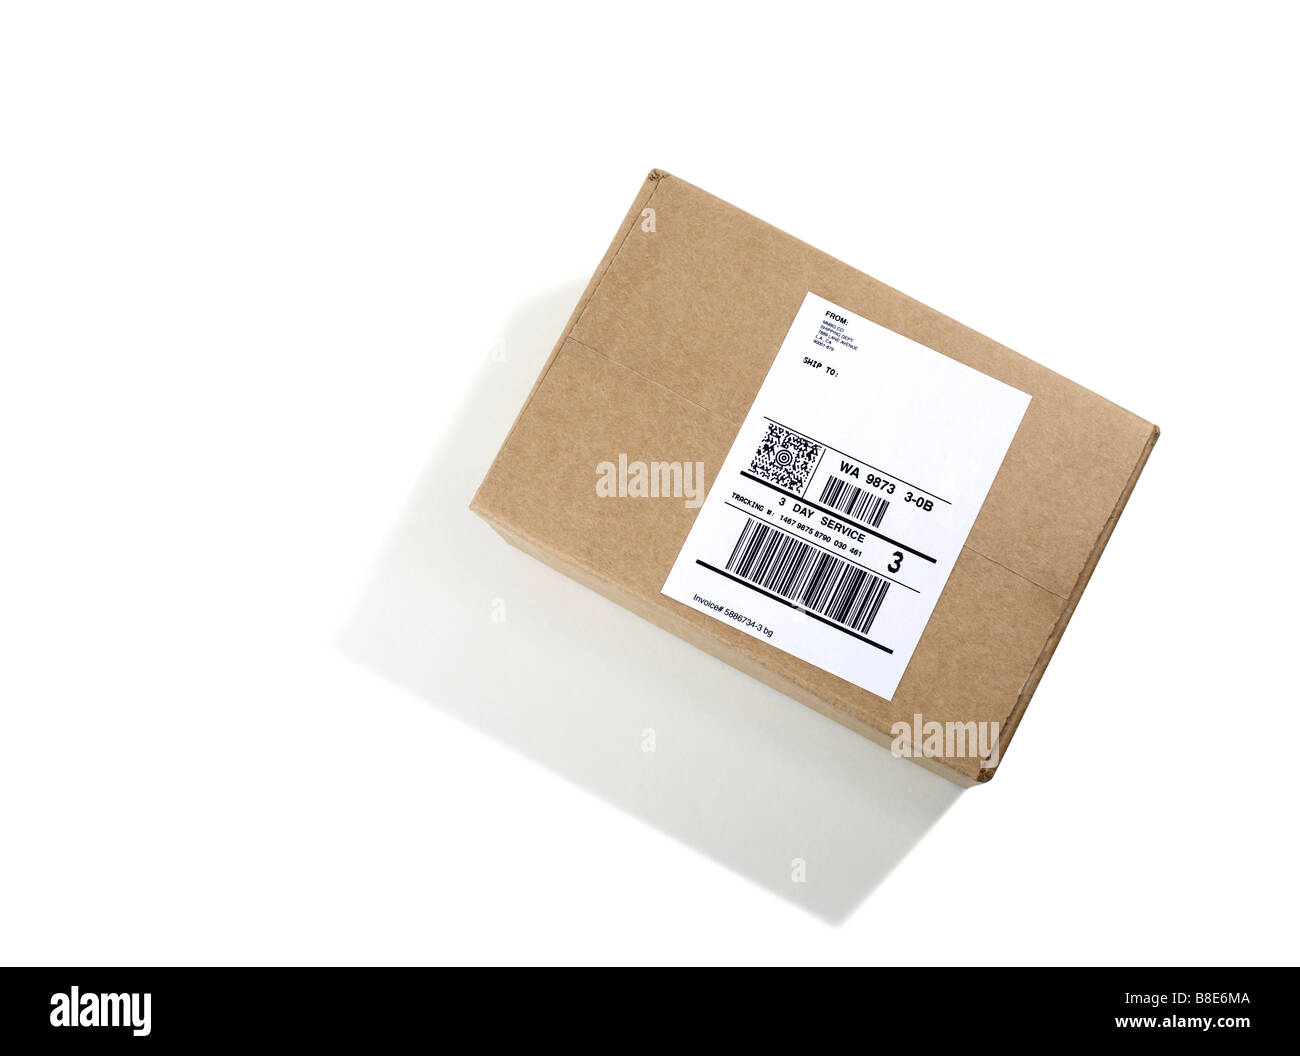 Labeled Shipping Box - Stock Image